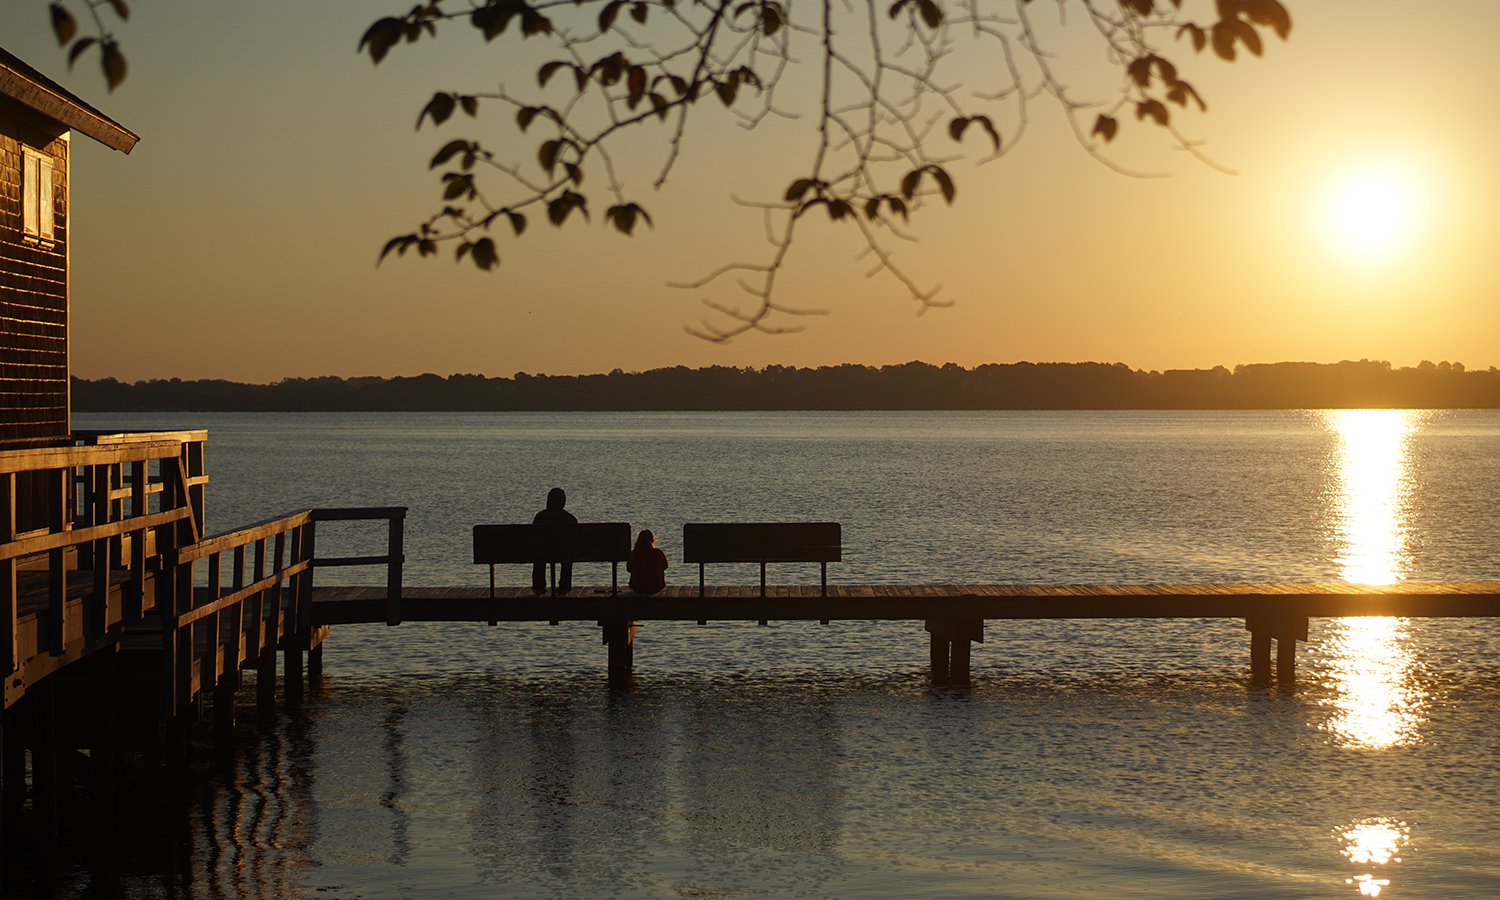 Students enjoy the sunrise over Seneca Lake at Bozzuto Boathouse, one of the most cherished campus spots for students and alums alike.